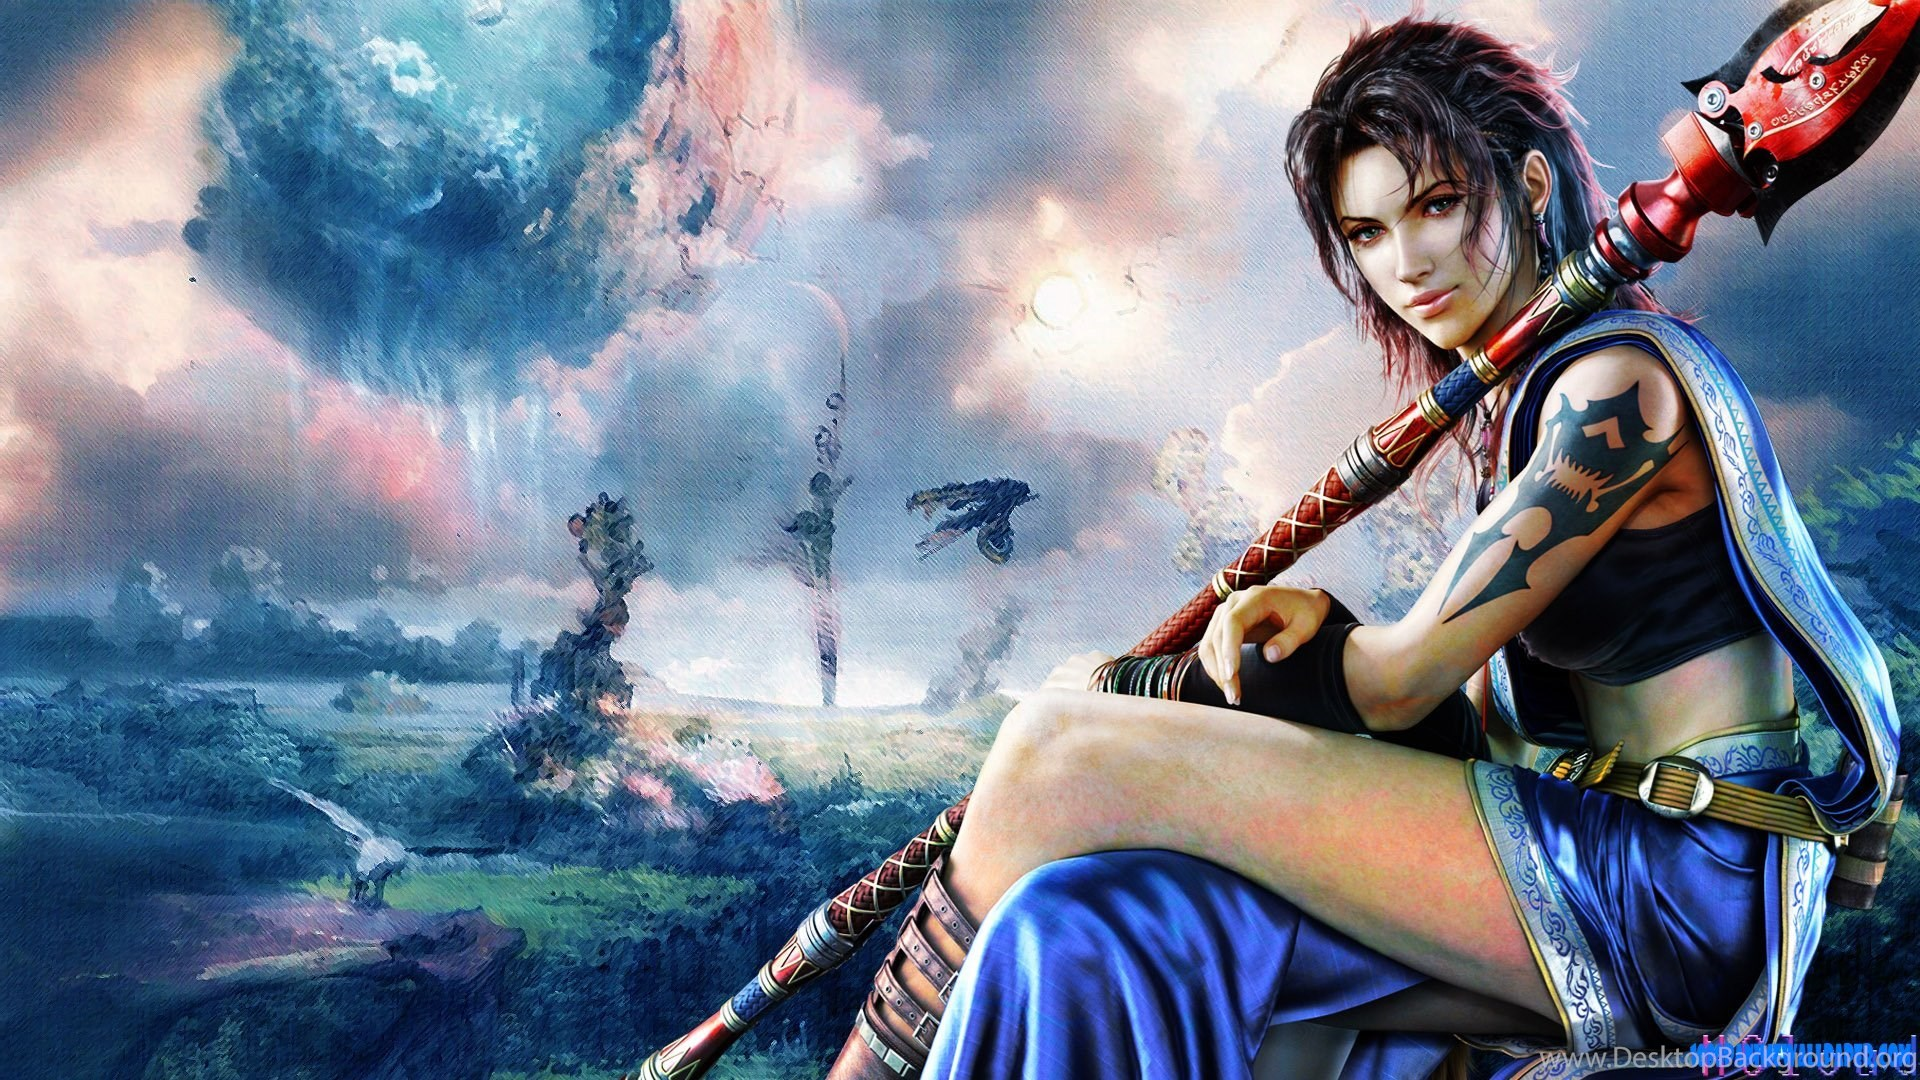 Final Fantasy 13 Fang Lightning 1920x1080 Hd Wallpapers And Free